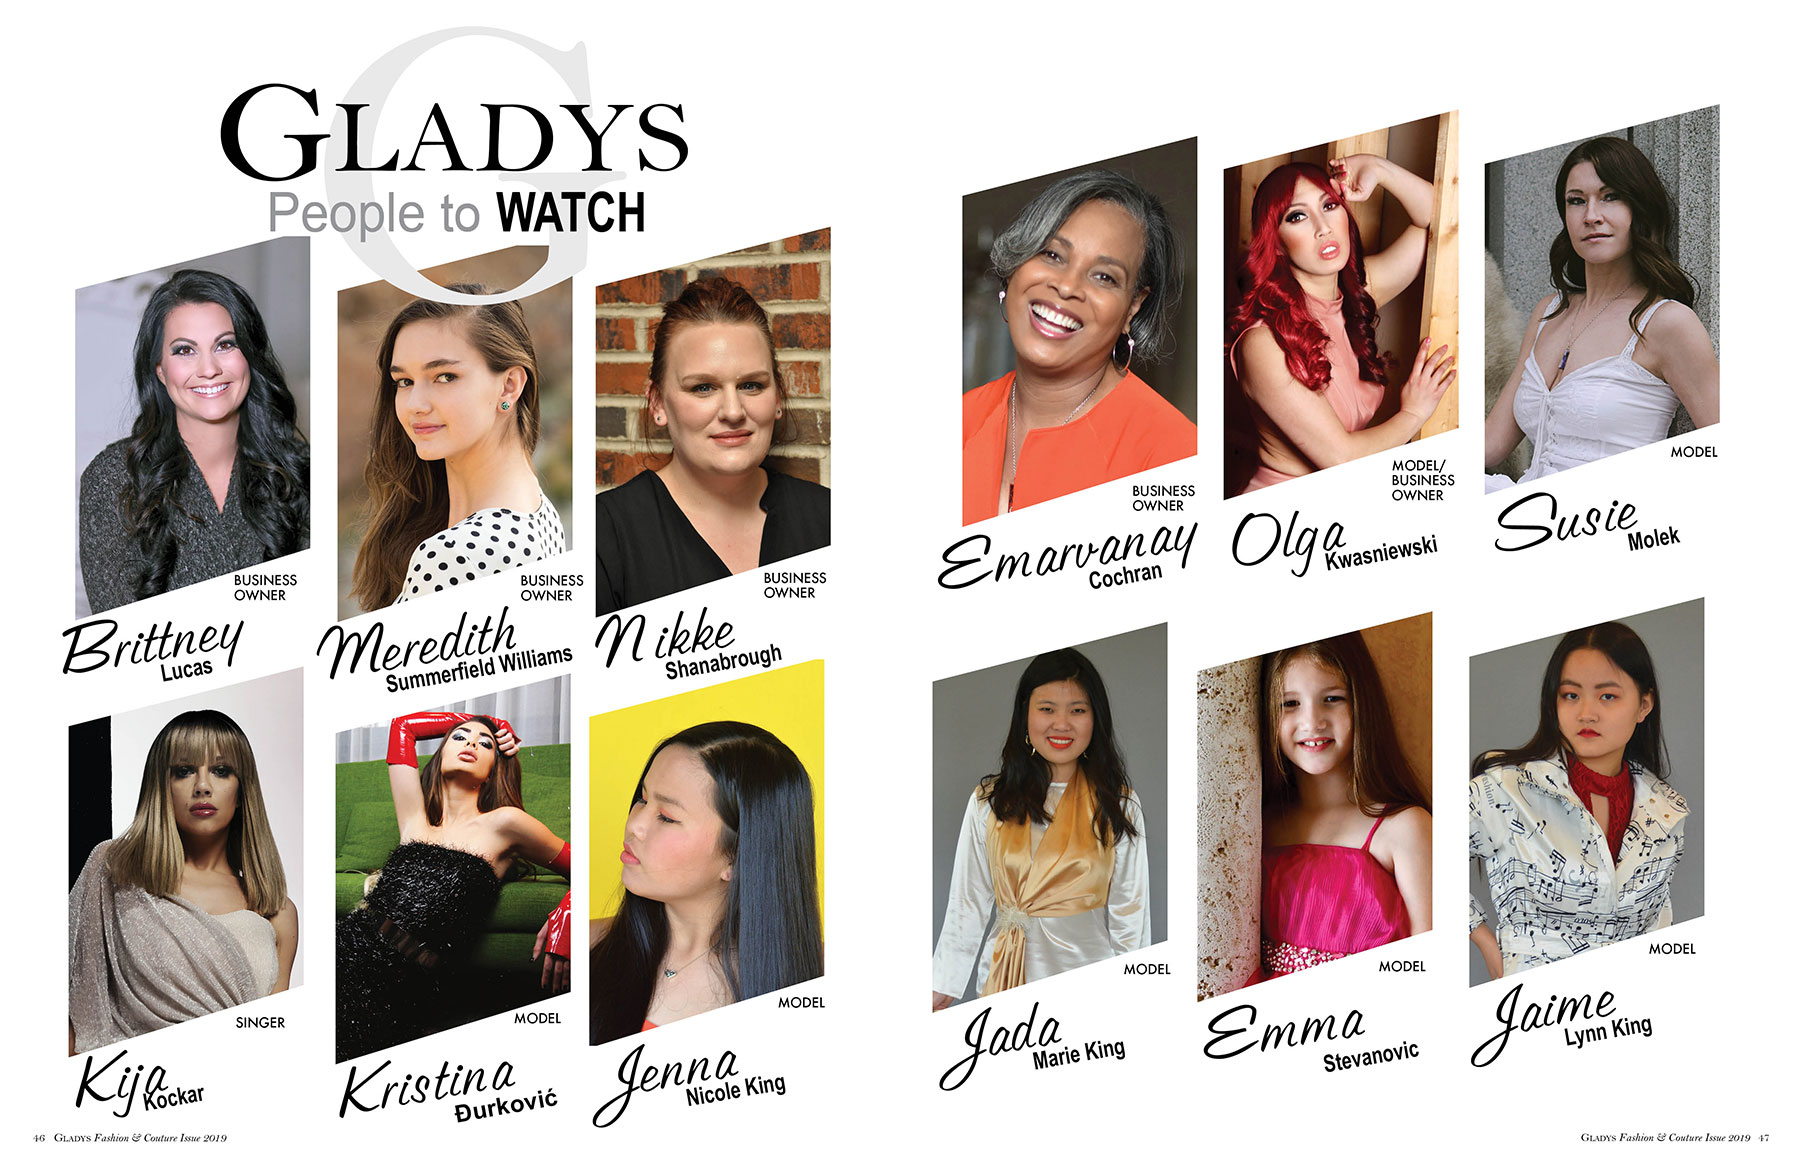 Gladys People to Watch